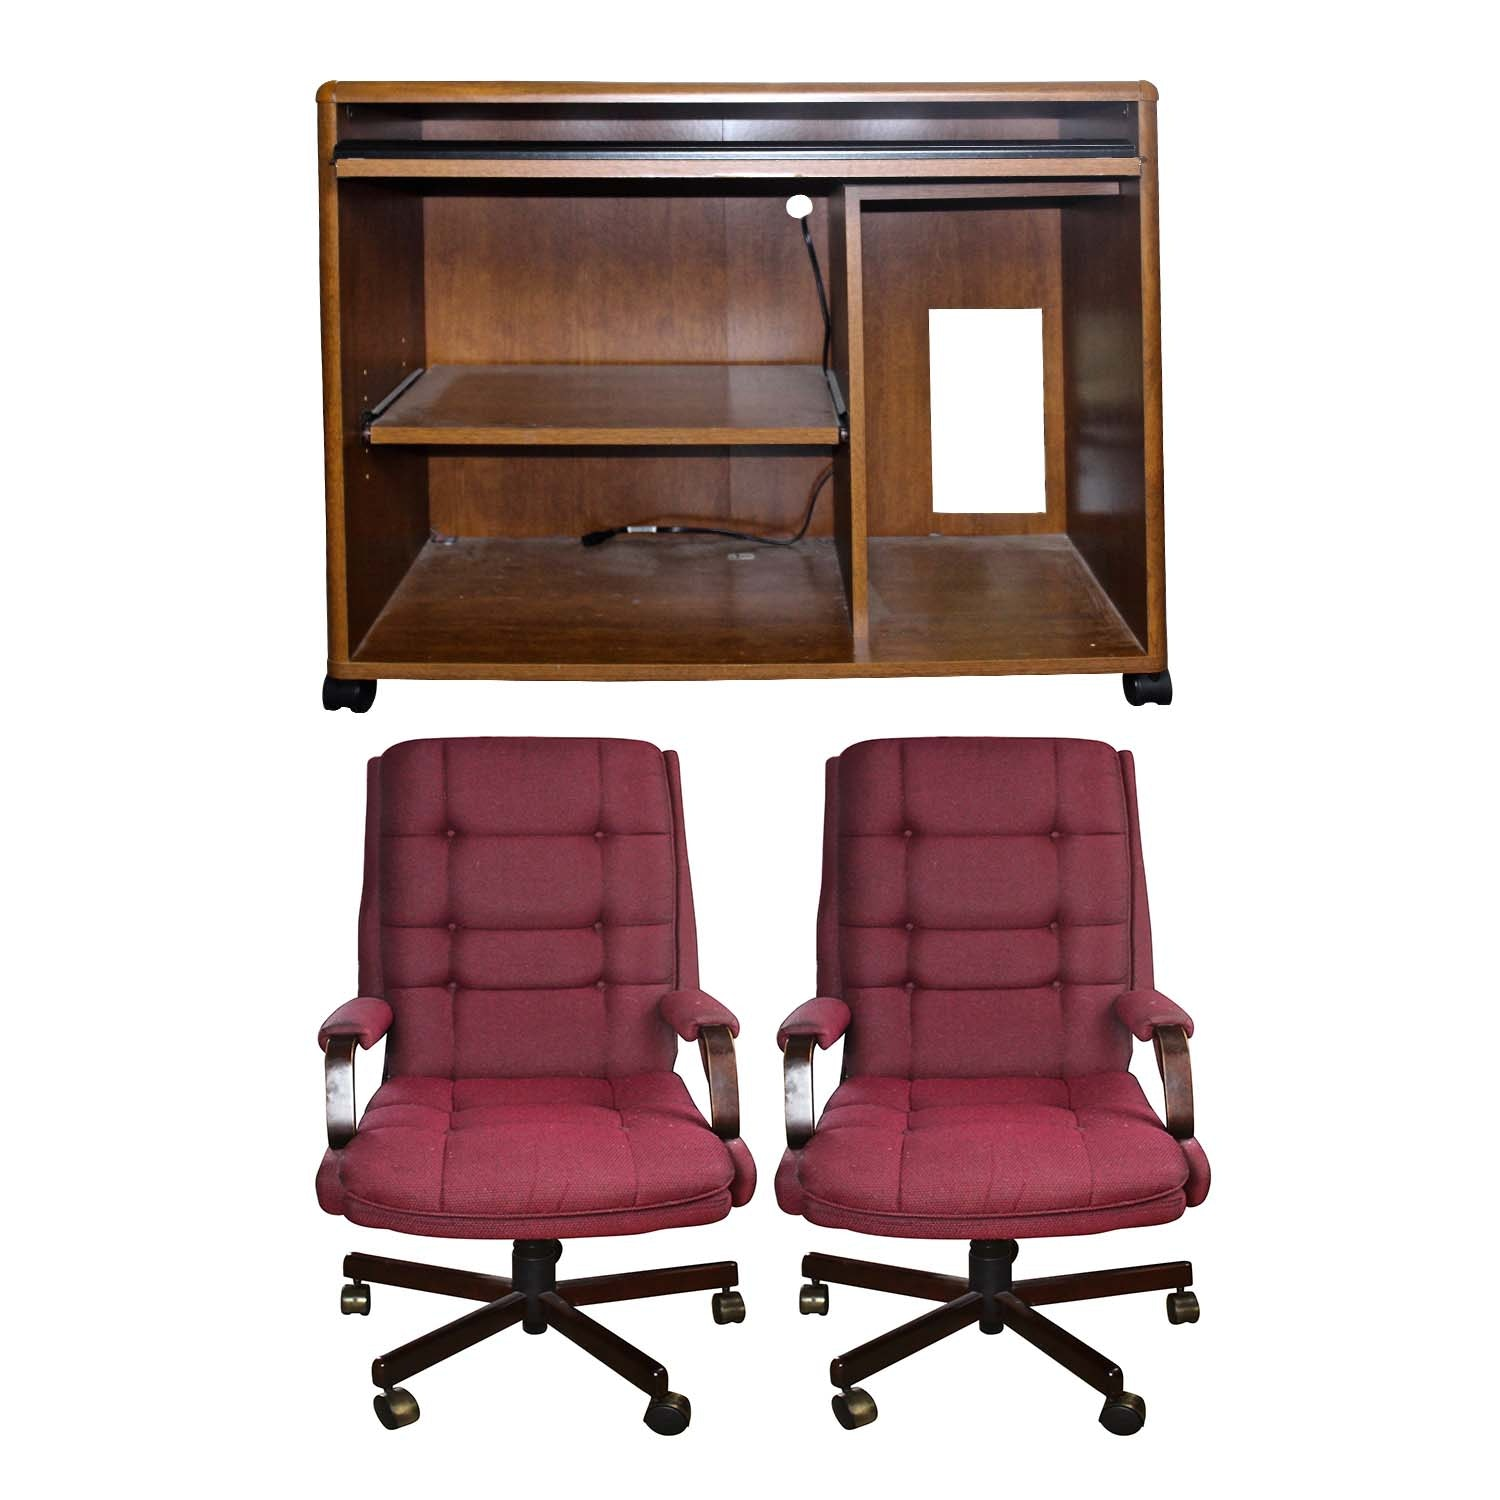 Computer Desk and Two  La-Z-Boy Adjustable Desk Chairs